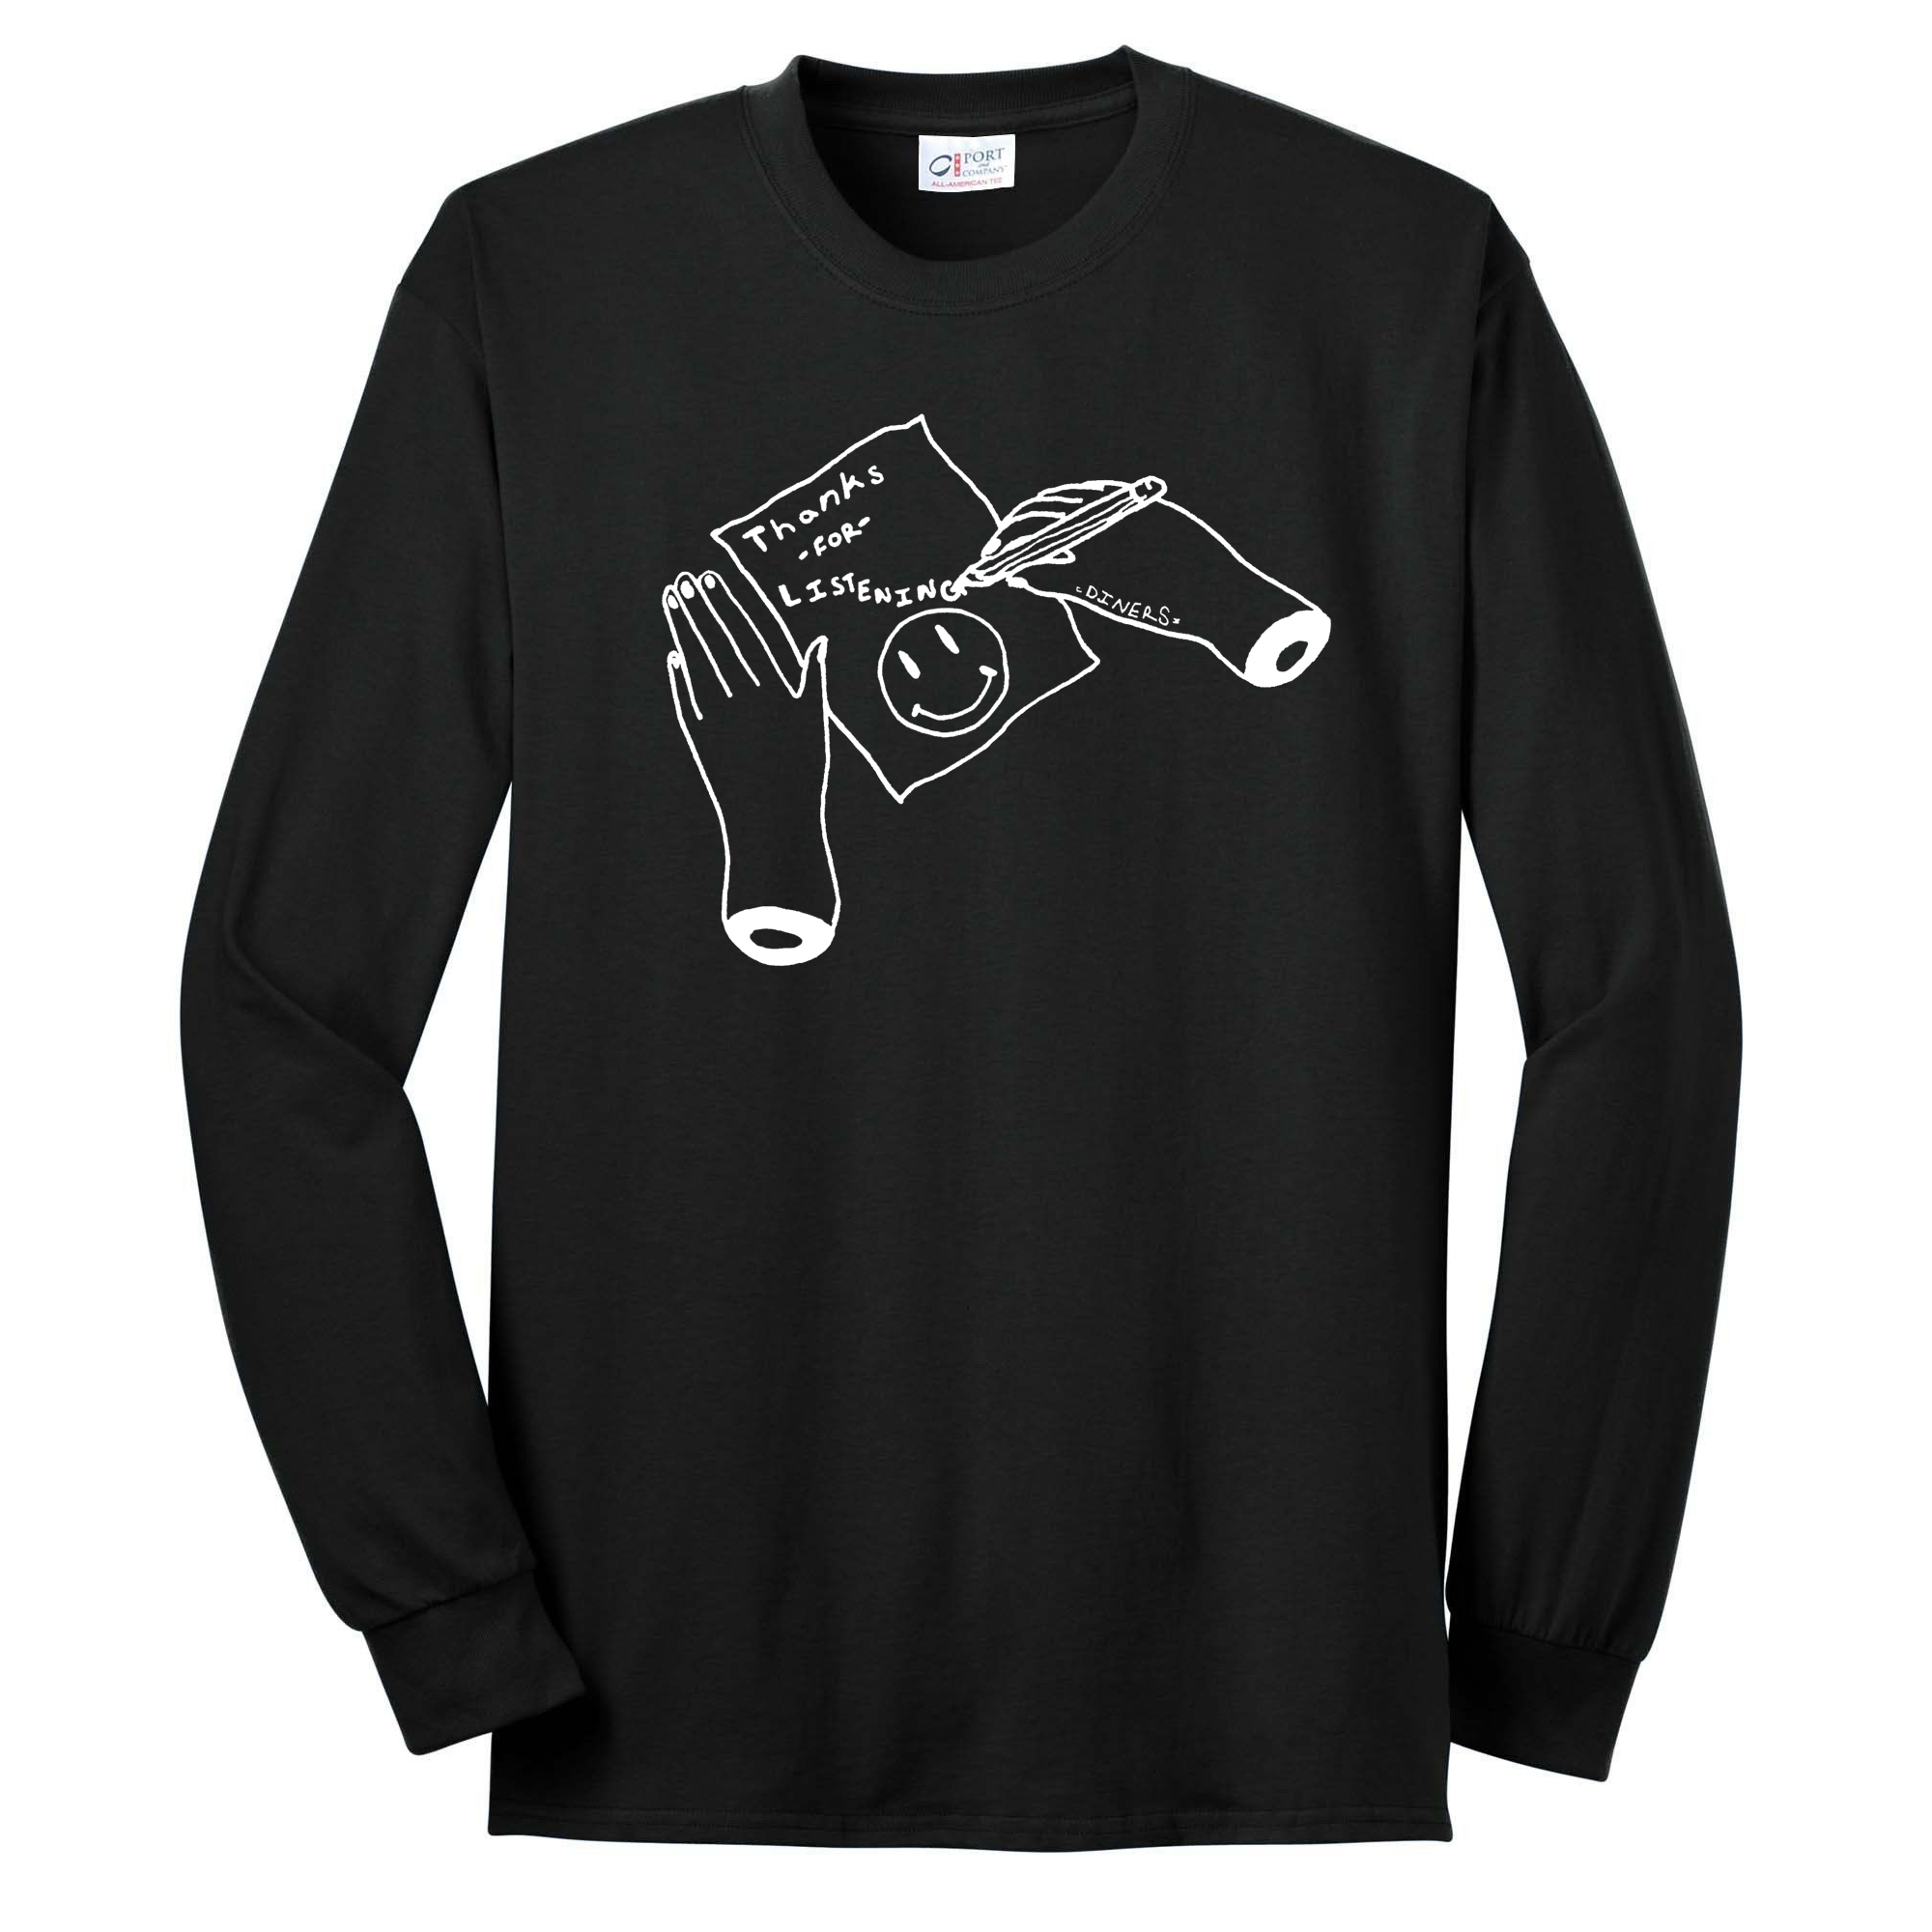 Thank You For Listening Long Sleeve Shirt (SALE) (Only XL's Left ...